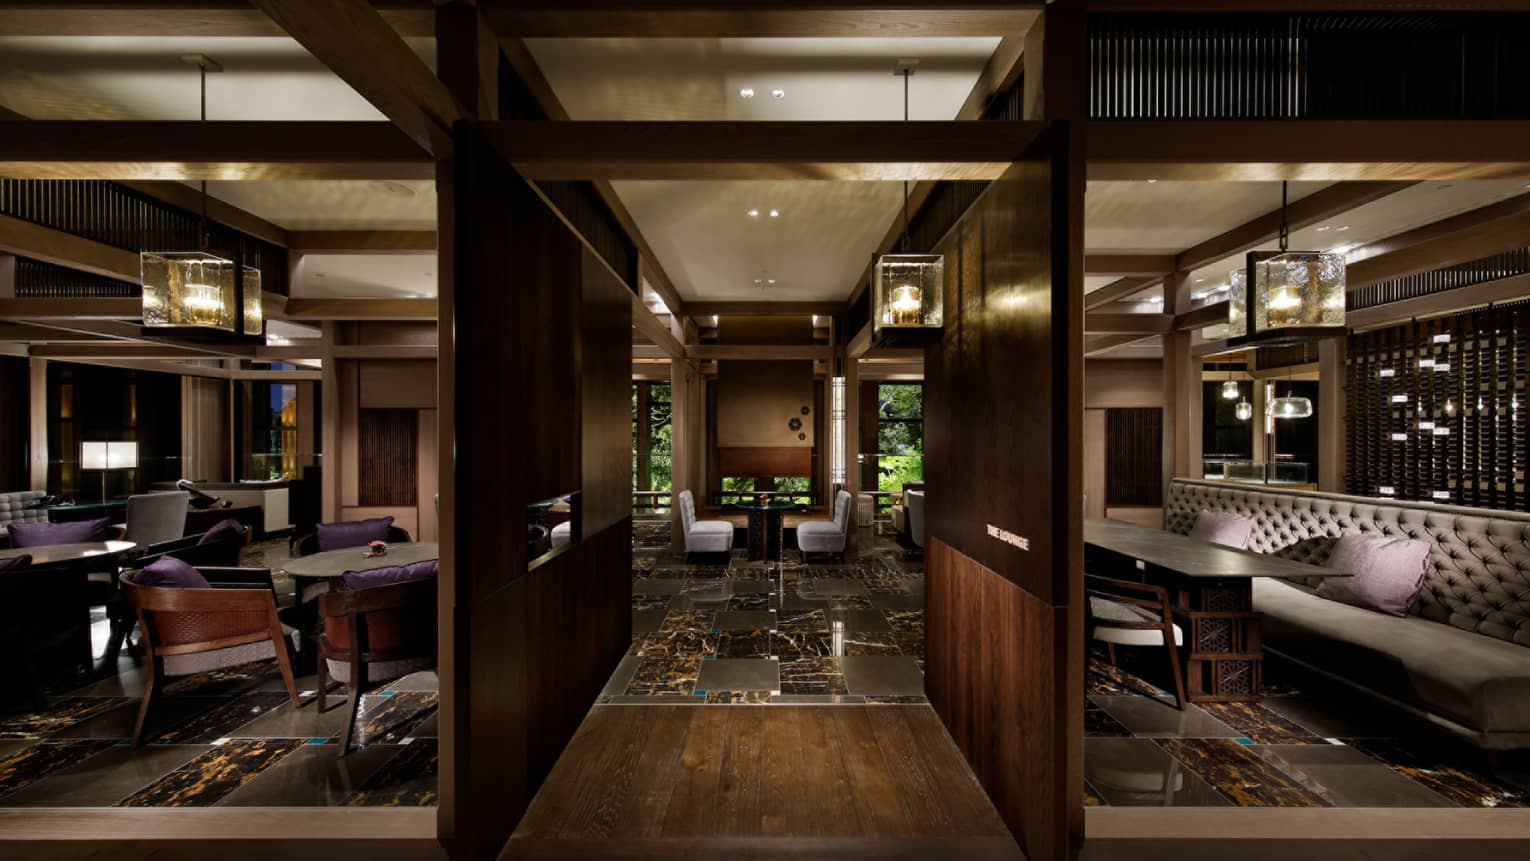 The Lounge dark wood walls, beams, black marble floors, thick glass chandeliers